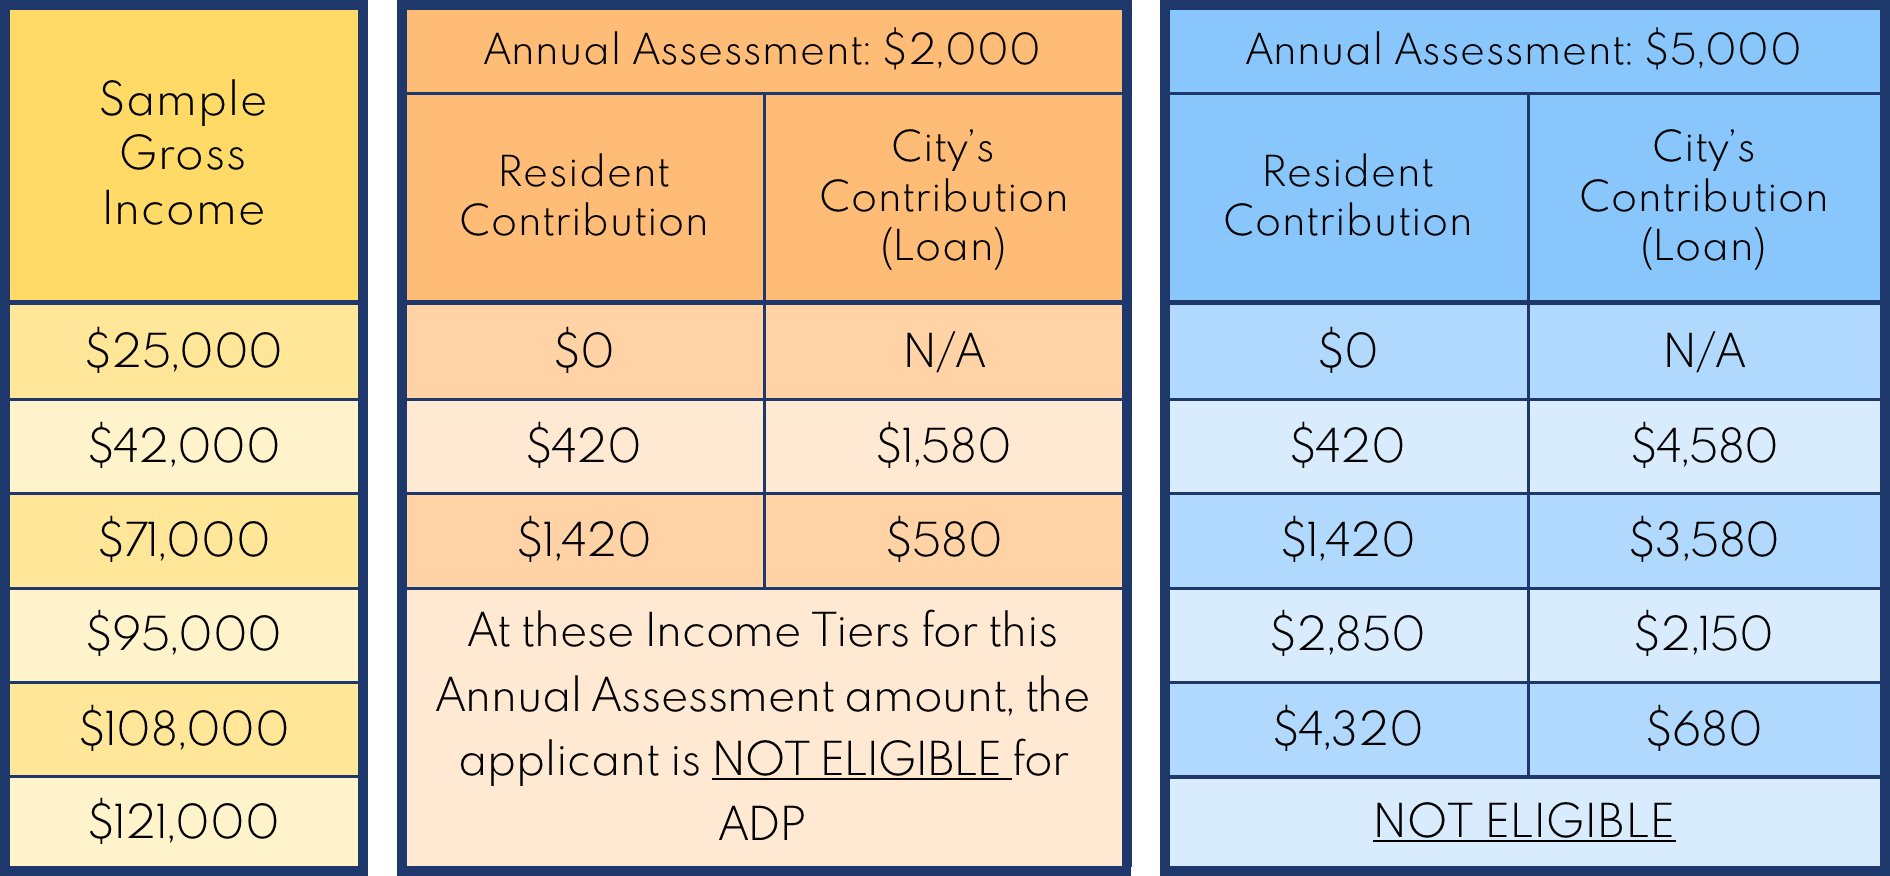 Sample Loan Calculations at 2 Annual Assessment Levels